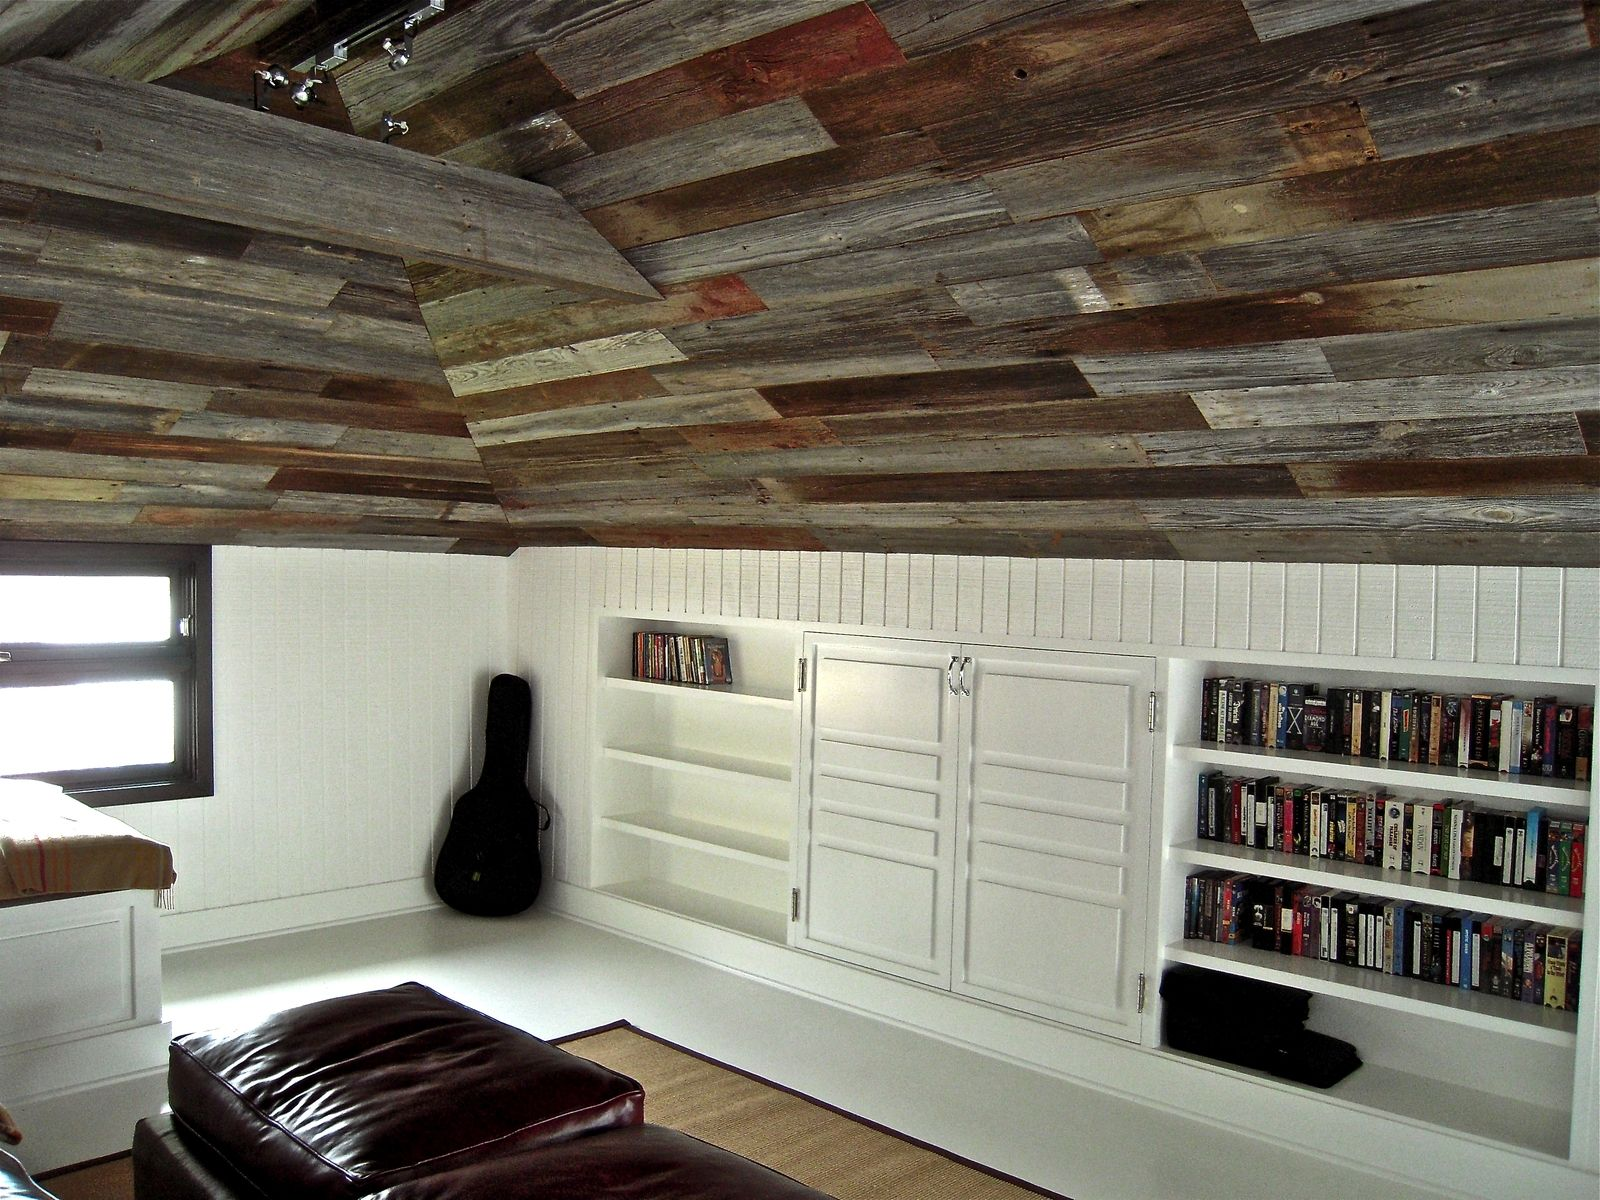 Hand Crafted Custom Built In Bookcases And Old Barn Wood Ceiling By Mortise Tenon Furniture